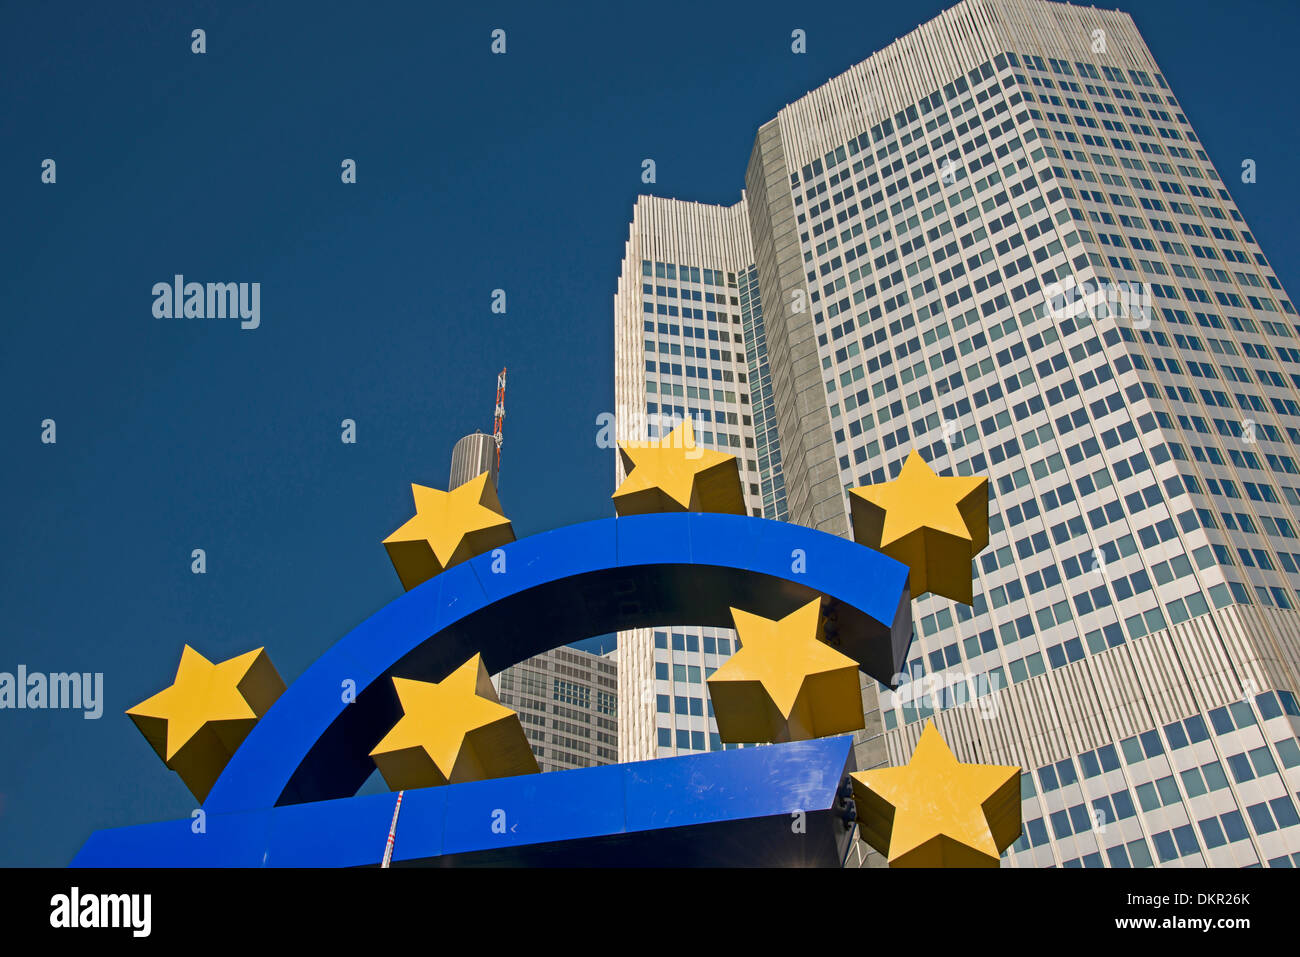 Architecture bank bank quarter bank building Brandt office building block Germany Europe European eurosigns euromarks EZB - Stock Image